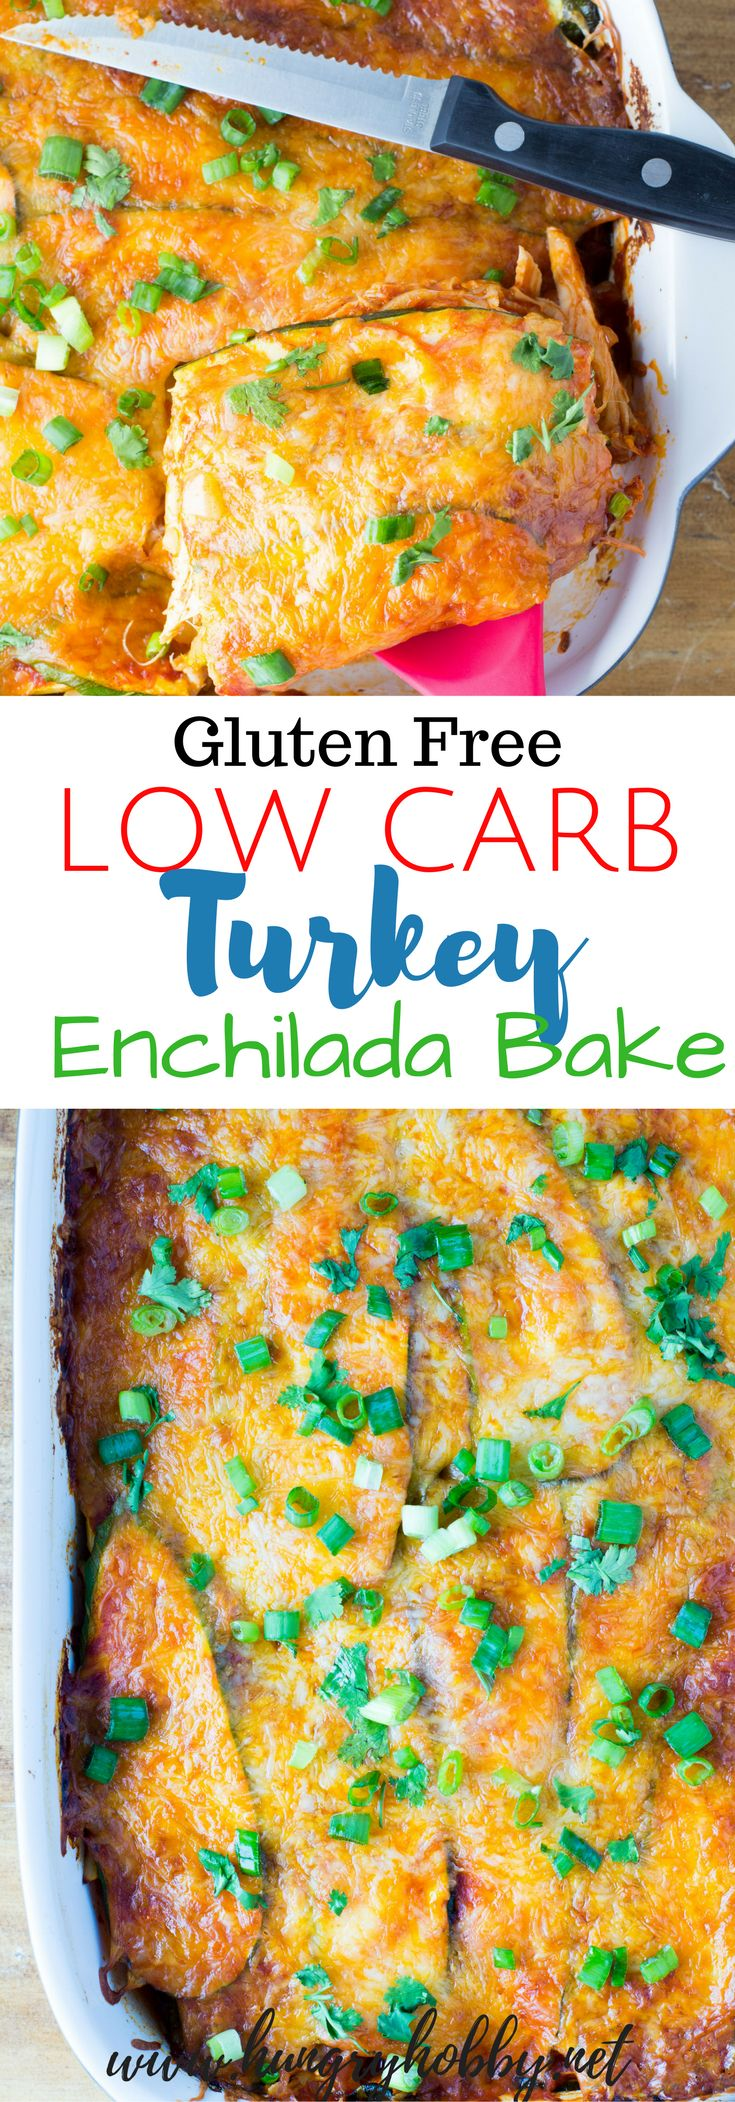 This Low Carb Turkey Enchilada Casserole uses zucchini noodles instead of tortillas for a veggie-packed win, fewer carbs, and all the enchilada flavor! via @hungryhobby